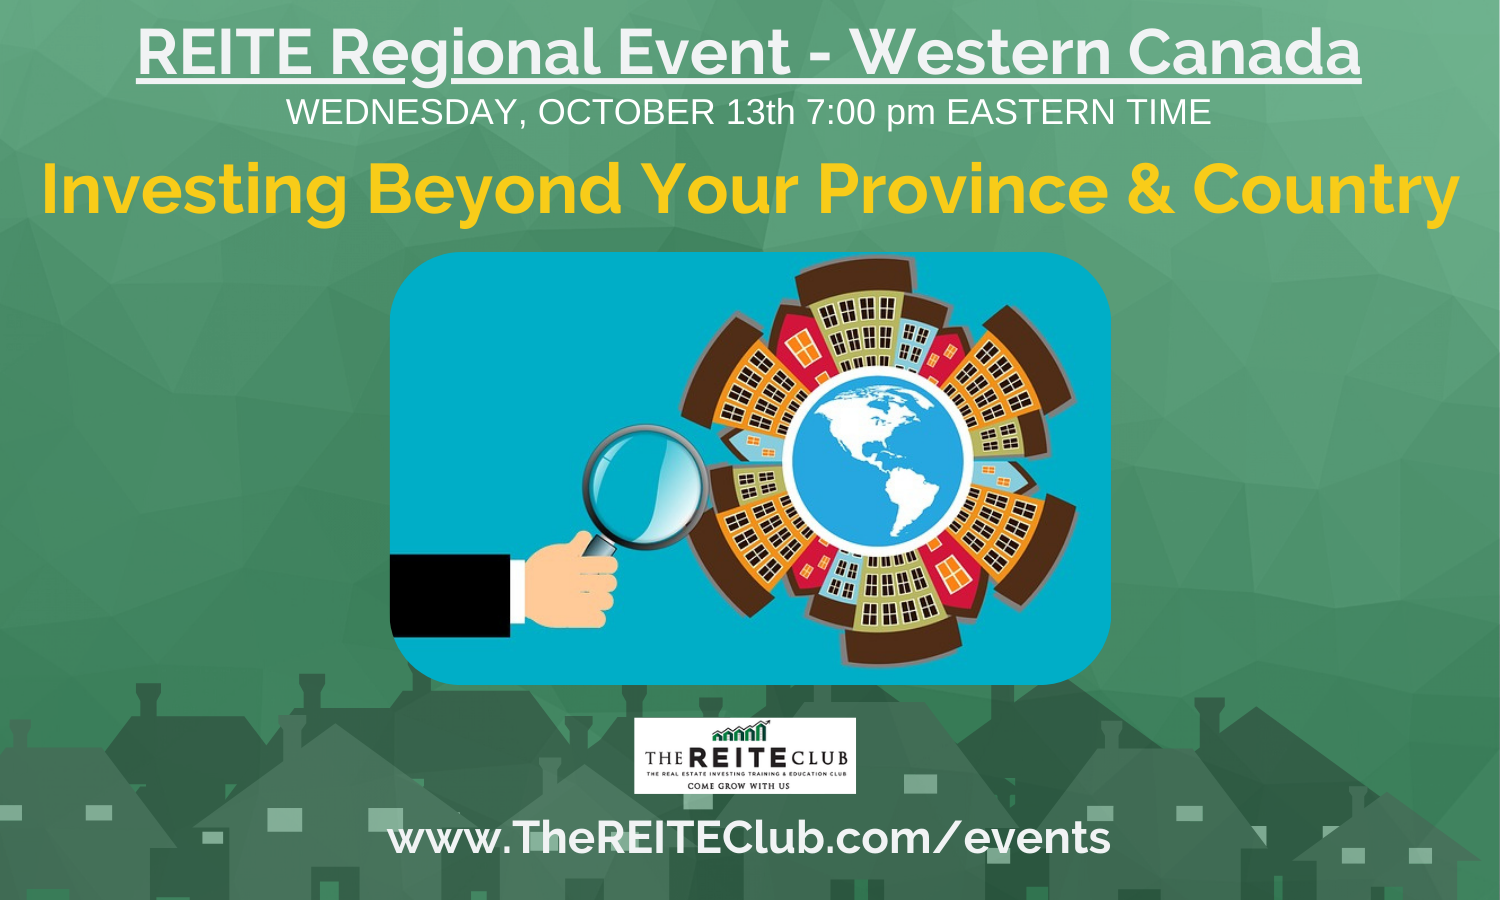 Investing Beyond Your Province & Country